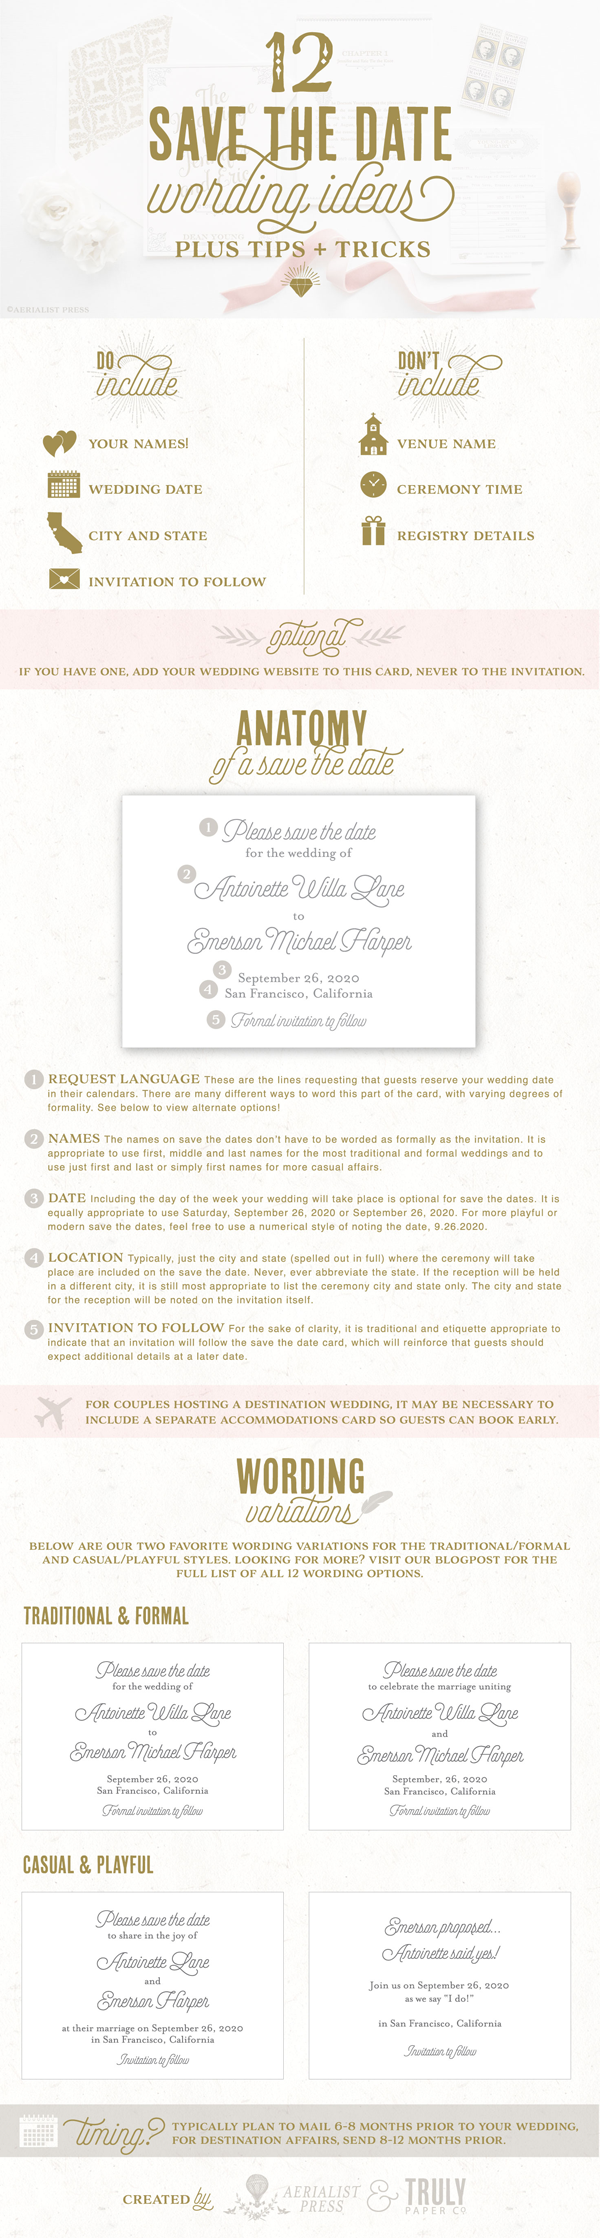 12 Save the date wording ideas infographic by Aerialist Press.